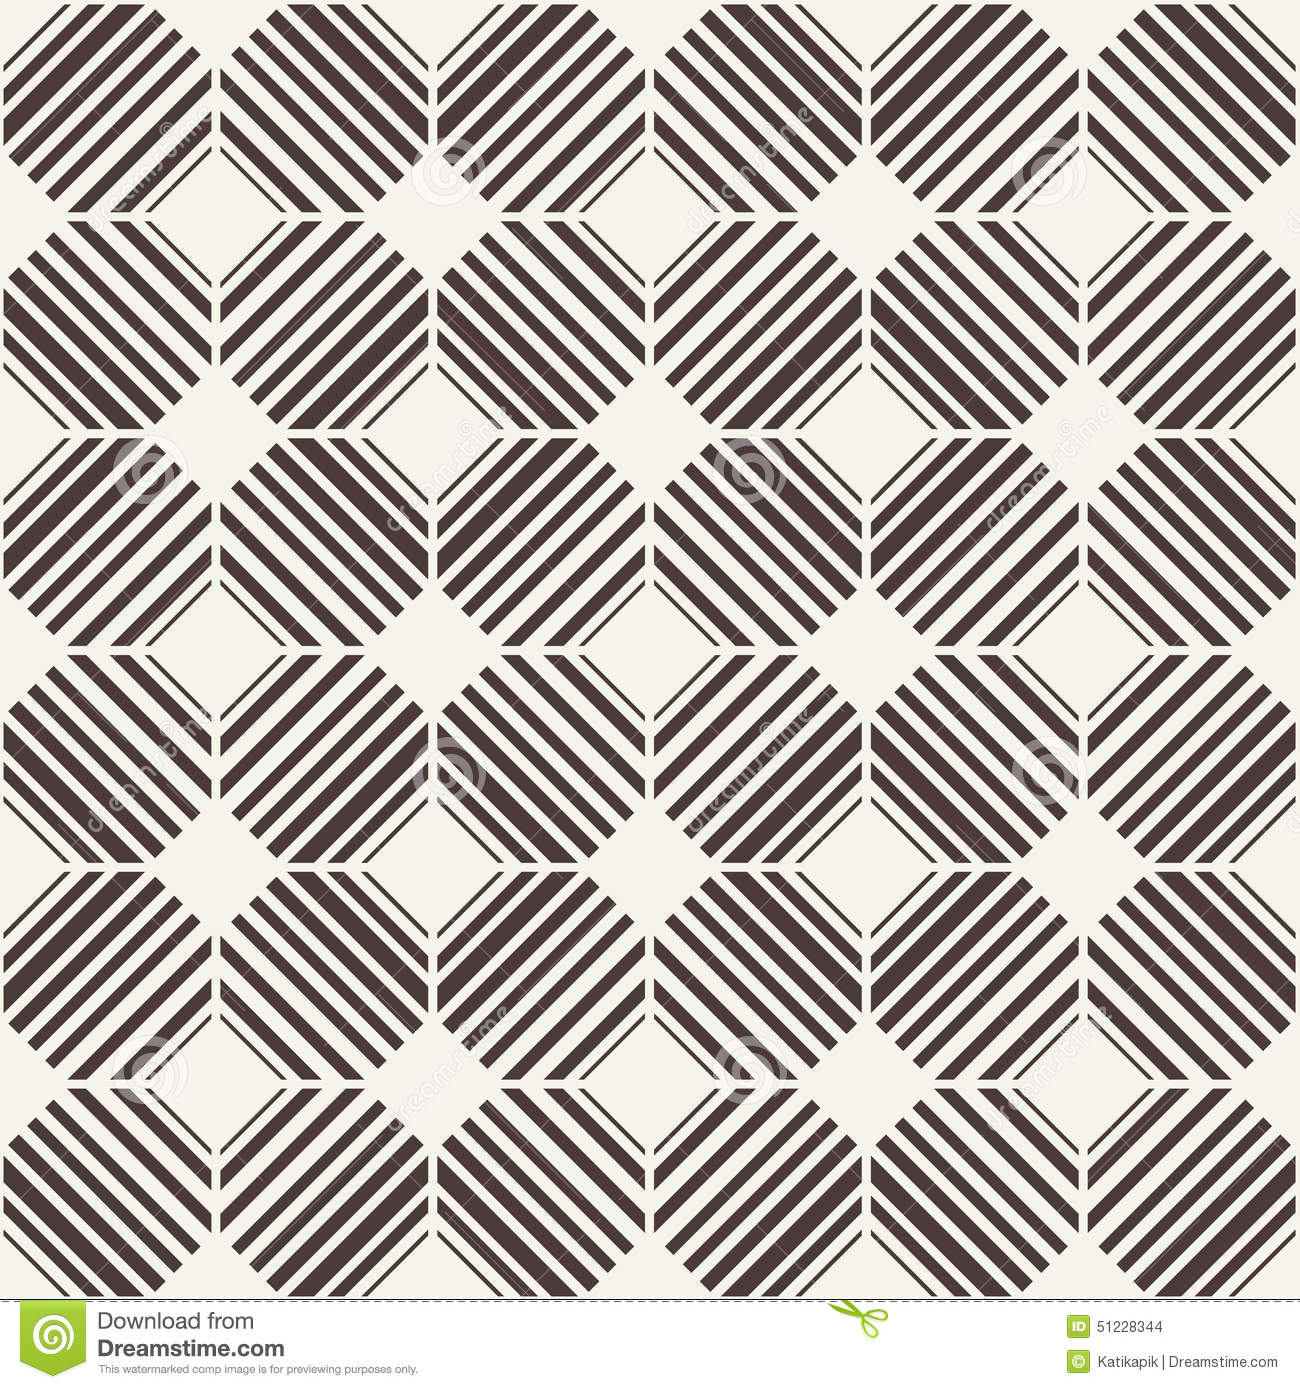 Black And White Hexagon Tiles Pattern Repeat Royalty Free Stock Photography